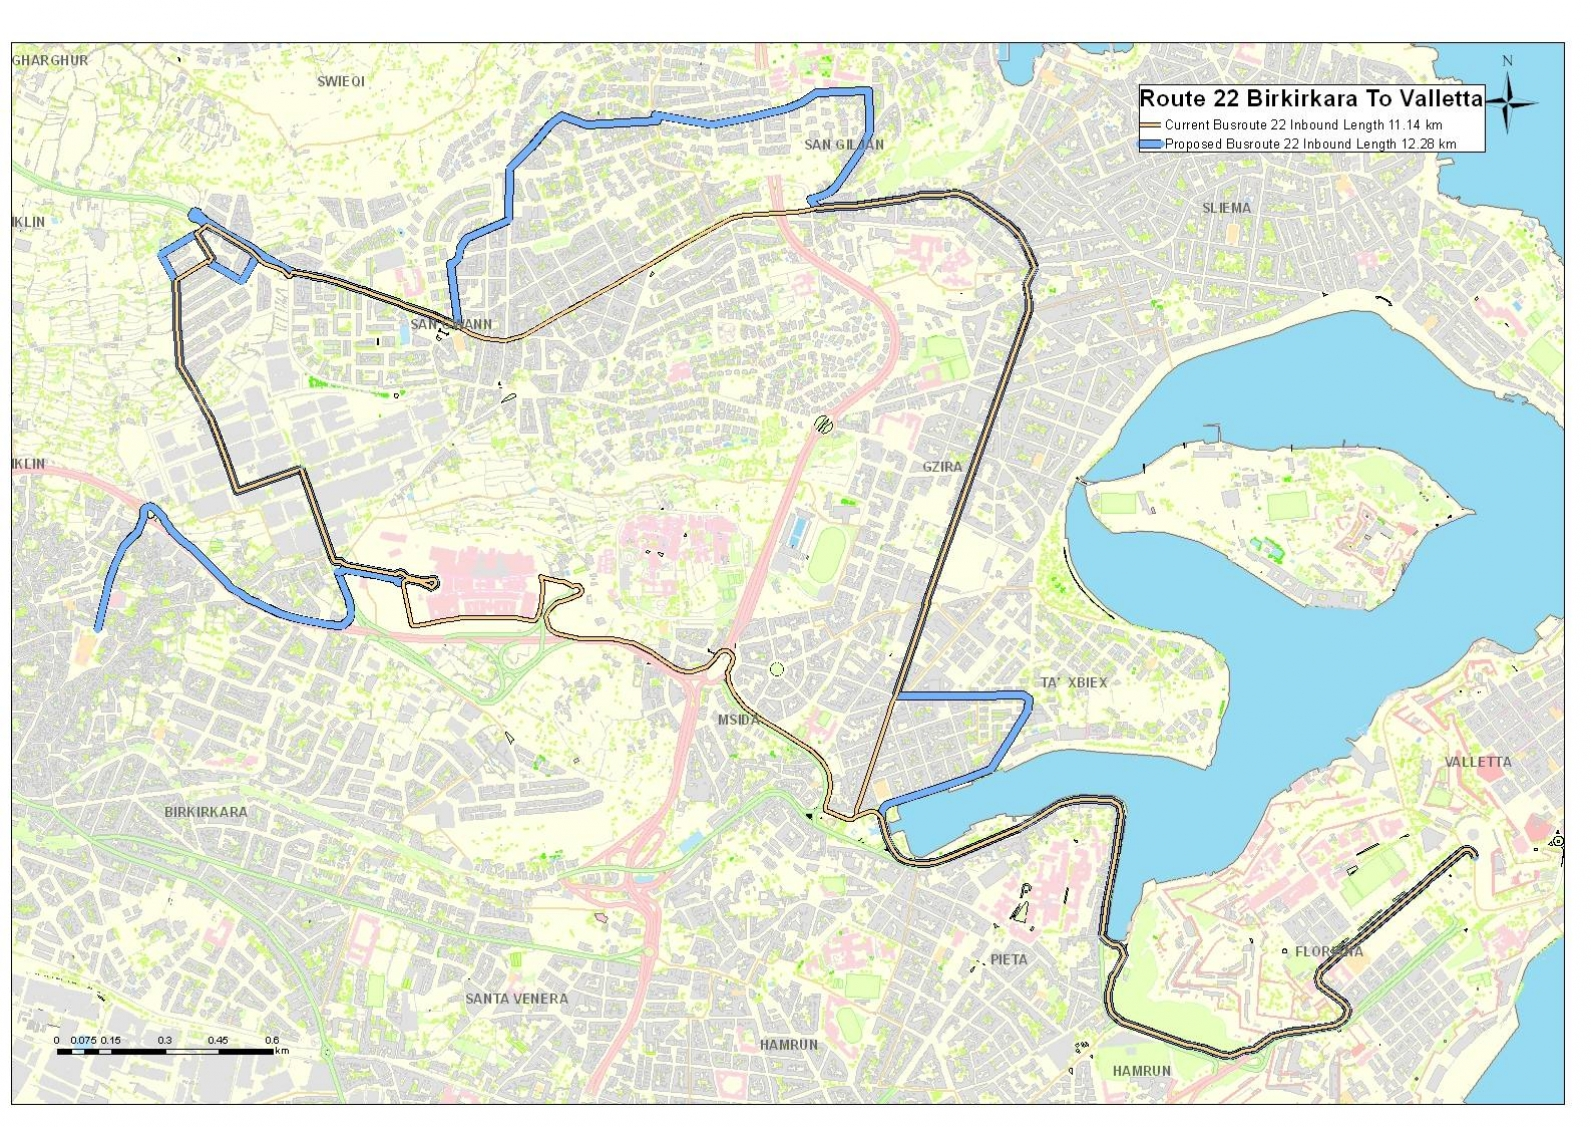 Land-Current-Network-Routes-and-schedules-Birkirkara-santa-liena-stazzjon-1